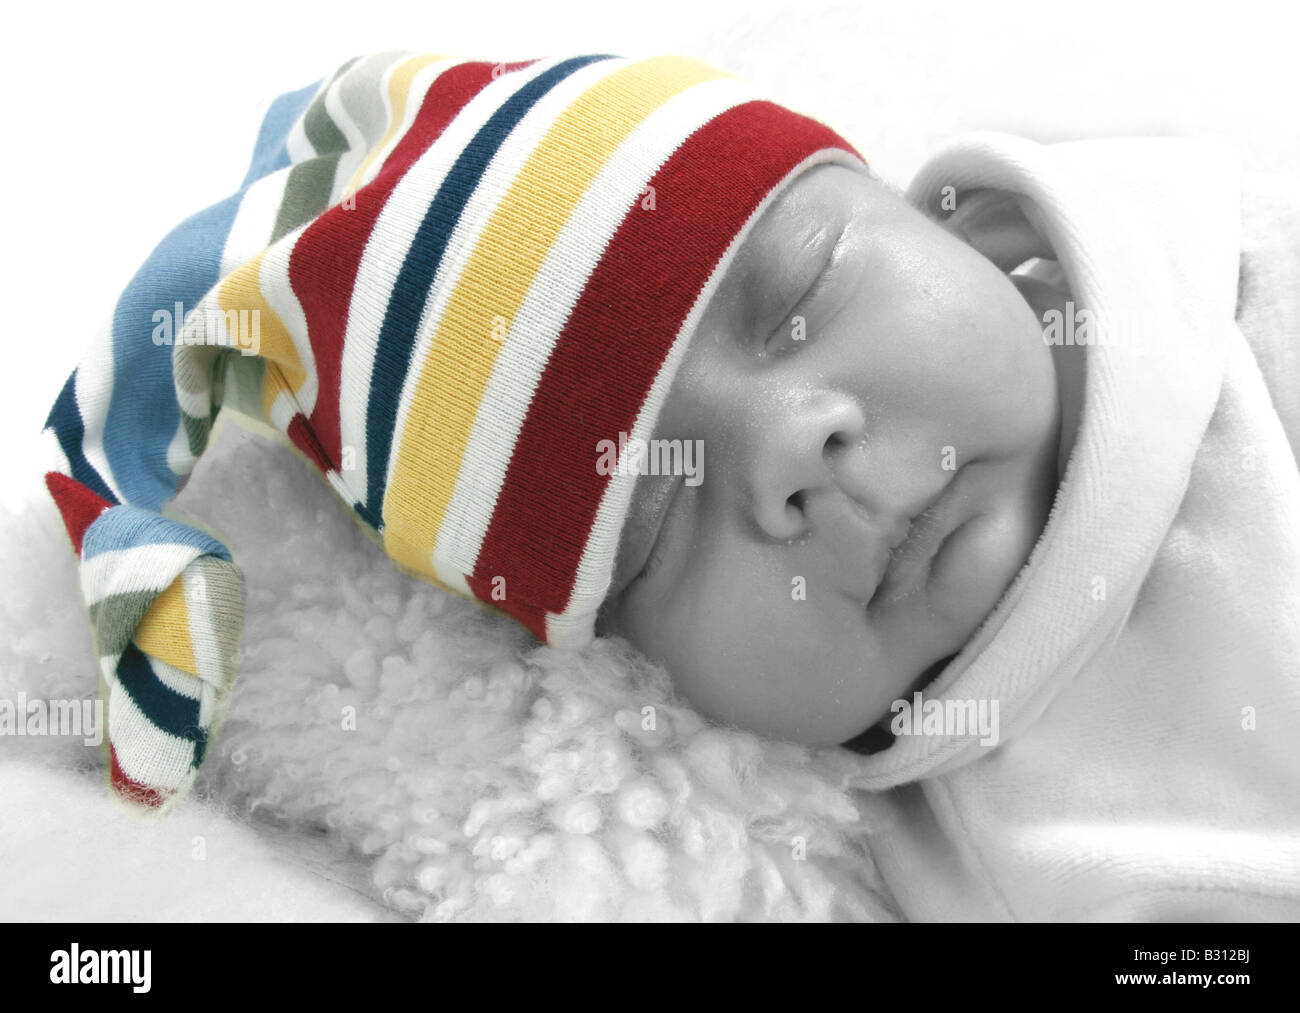 sleeping baby wearing curled jelly bag cap Stock Photo  19078182 - Alamy d47d35f3c37